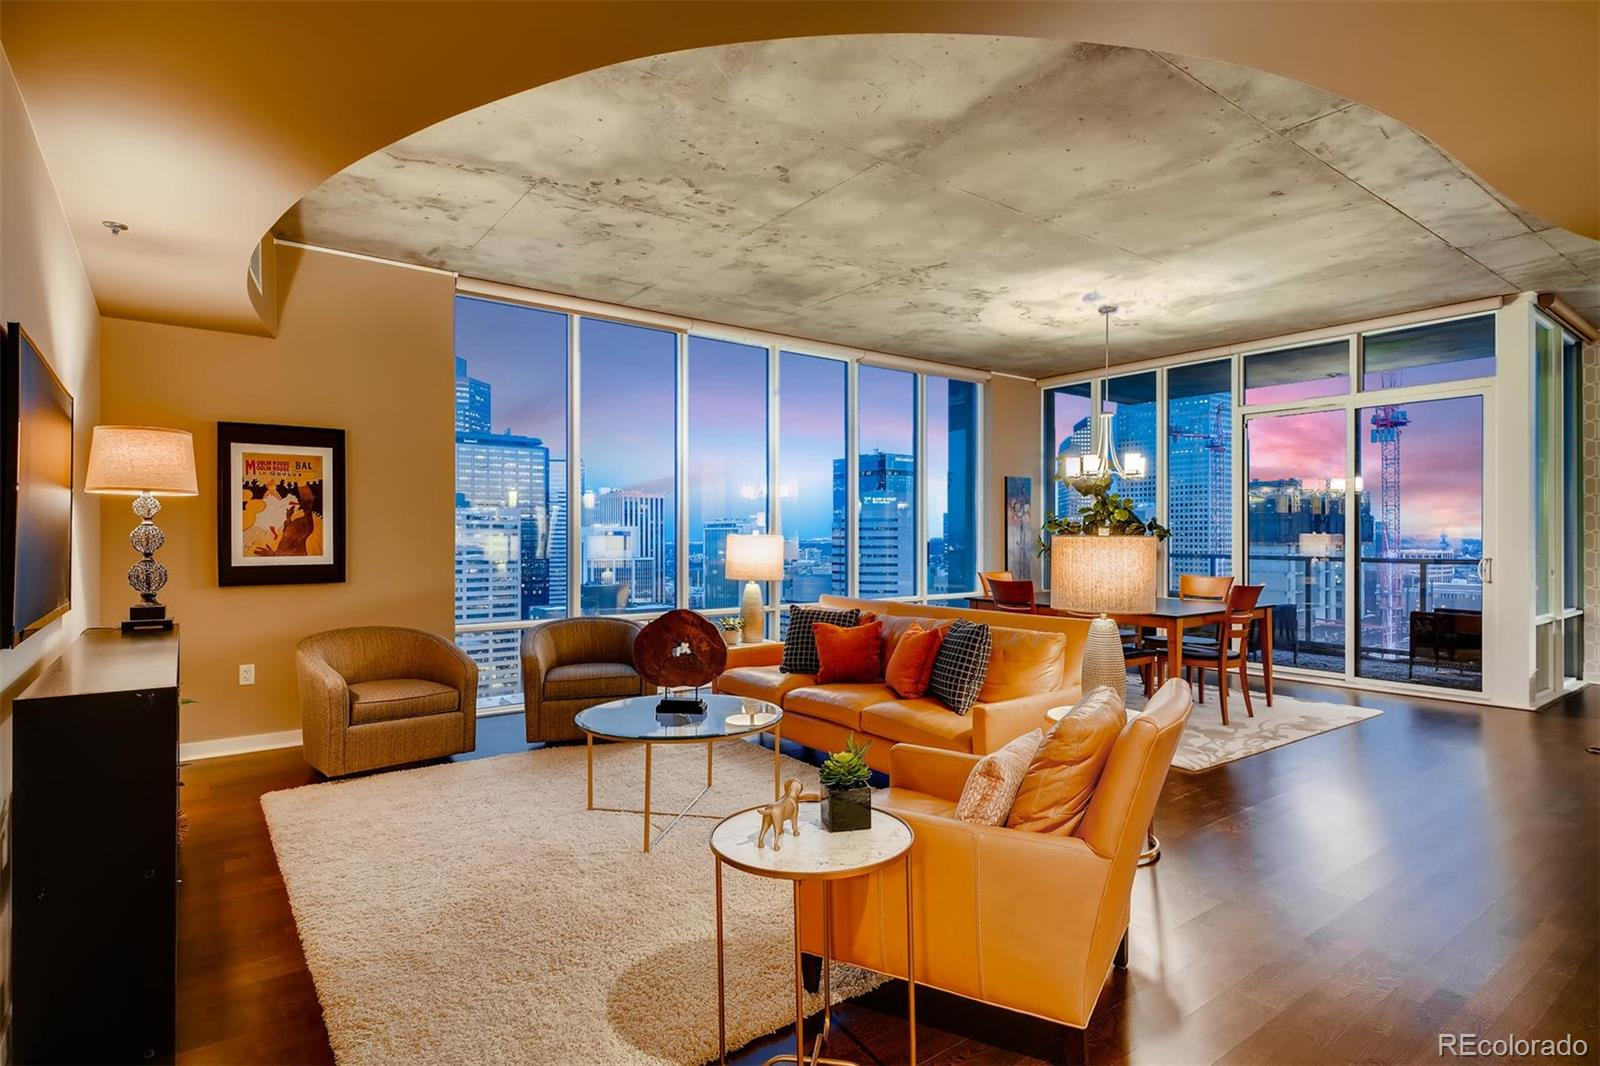 """ALL FURNISHINGS & ACCESSORIES (EXCEPT A FEW STAGING ITEMS) INCLUDED AT THIS PRICE!! SPECTACULAR VIEWS IN A CORNER HOME! Step into this gorgeous SPIRE home perched 34 stories above Denver, with all of downtown at your feet. This spacious 2-bedroom/2.5-bathroom corner condo has nearly 1,700 square feet of contemporary living space in a wide-open floor plan with tons of natural light. Plenty of privacy with two bedrooms on opposite ends of the home. """"This is my favorite floor plan at SPIRE"""" is a frequent comment made by guests and residents alike. Special features and upgrades include beautiful hardwood floors, new carpeting in the bedrooms, Hunter Douglas shades, ceiling fans, motorized shades, electronic thermostats, granite countertops, stainless steel appliances, contemporary wallpaper accents, and new custom cabinetry in the built-in bar area, featuring a wine fridge. TWO LARGE BALCONIES and access to the exclusive 42nd-floor SkyClub lounge make this home a rare find at SPIRE! Also included: 1 deeded parking space in a prime location and 1 storage space in the attached garage. All seller-owned furniture and furnishings are available for an additional fee. You'll want to view this residence twice to truly appreciate the jaw-dropping views – once by day and once at night. The highly-desirable 42-story SPIRE is LEED-certified w/40,000 square feet of resort-like amenities, including a rooftop pool (heated and open year-round), a hot-tub, extensive health club, The Zone multimedia lounge, Box Office home theater, garage dog park, yoga garden, outdoor grilling area, 10th-floor private event lounge, 24-hour courtesy desk, furnished guest suites, modern security and access control systems. Very well-maintained building. SPIRE Denver has fast internet coming soon--1 gig dedicated to each condo. Fastest downtown! Come home to Downtown Denver's SPIRE -- life is better here!"""